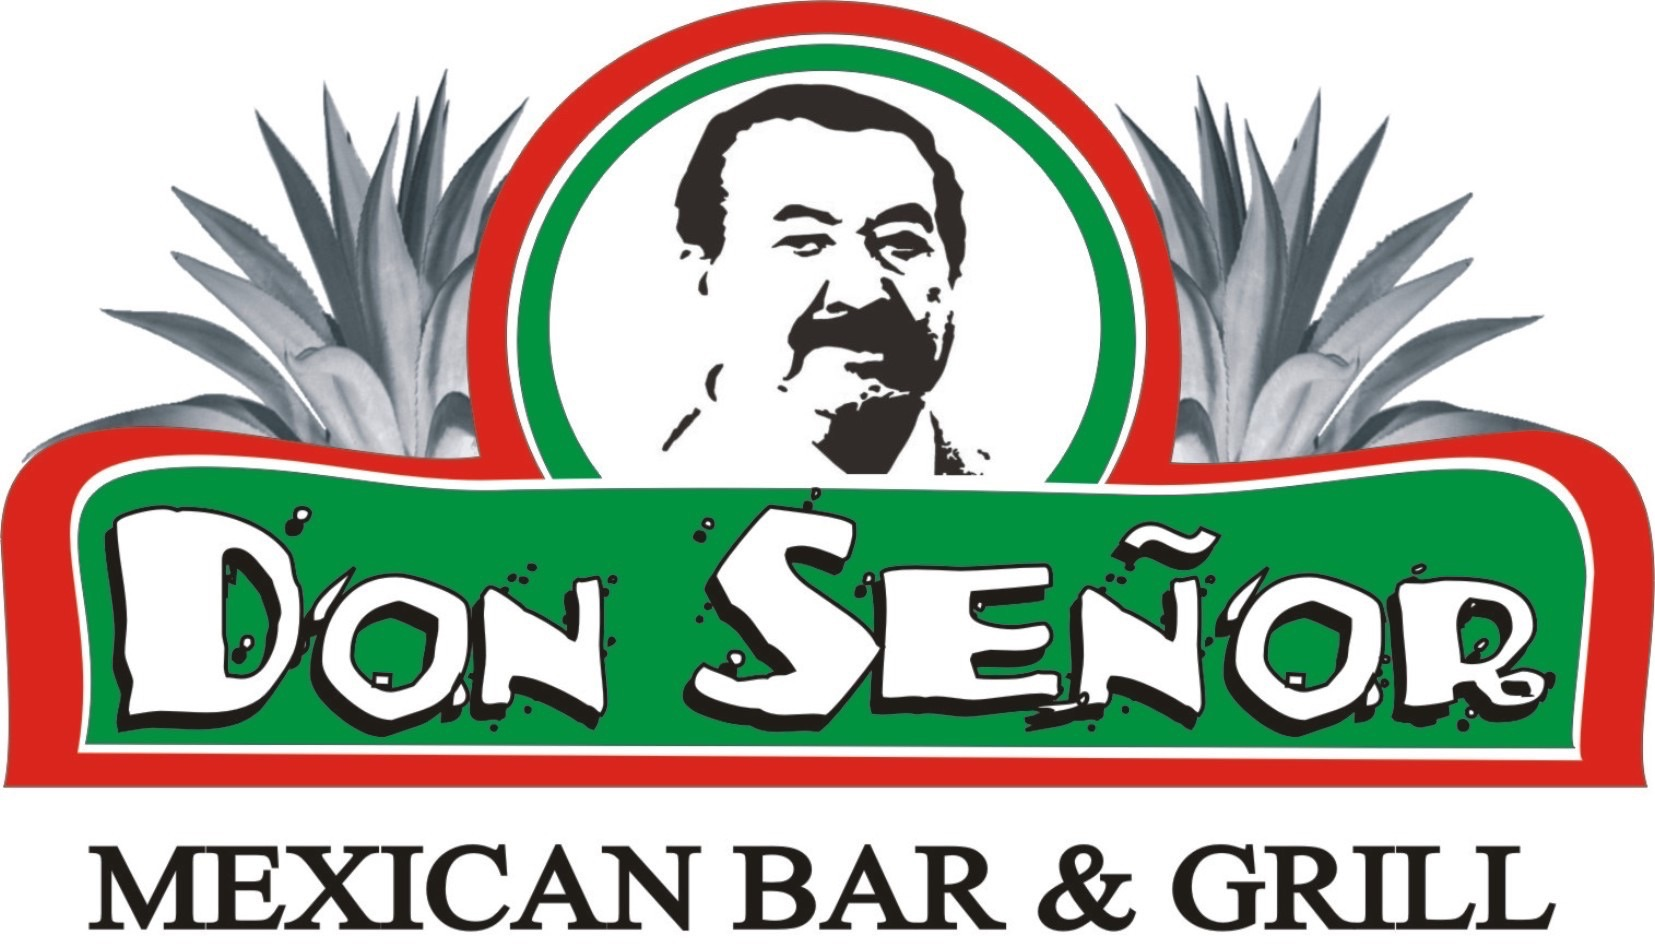 Local Business Image Is Don senor